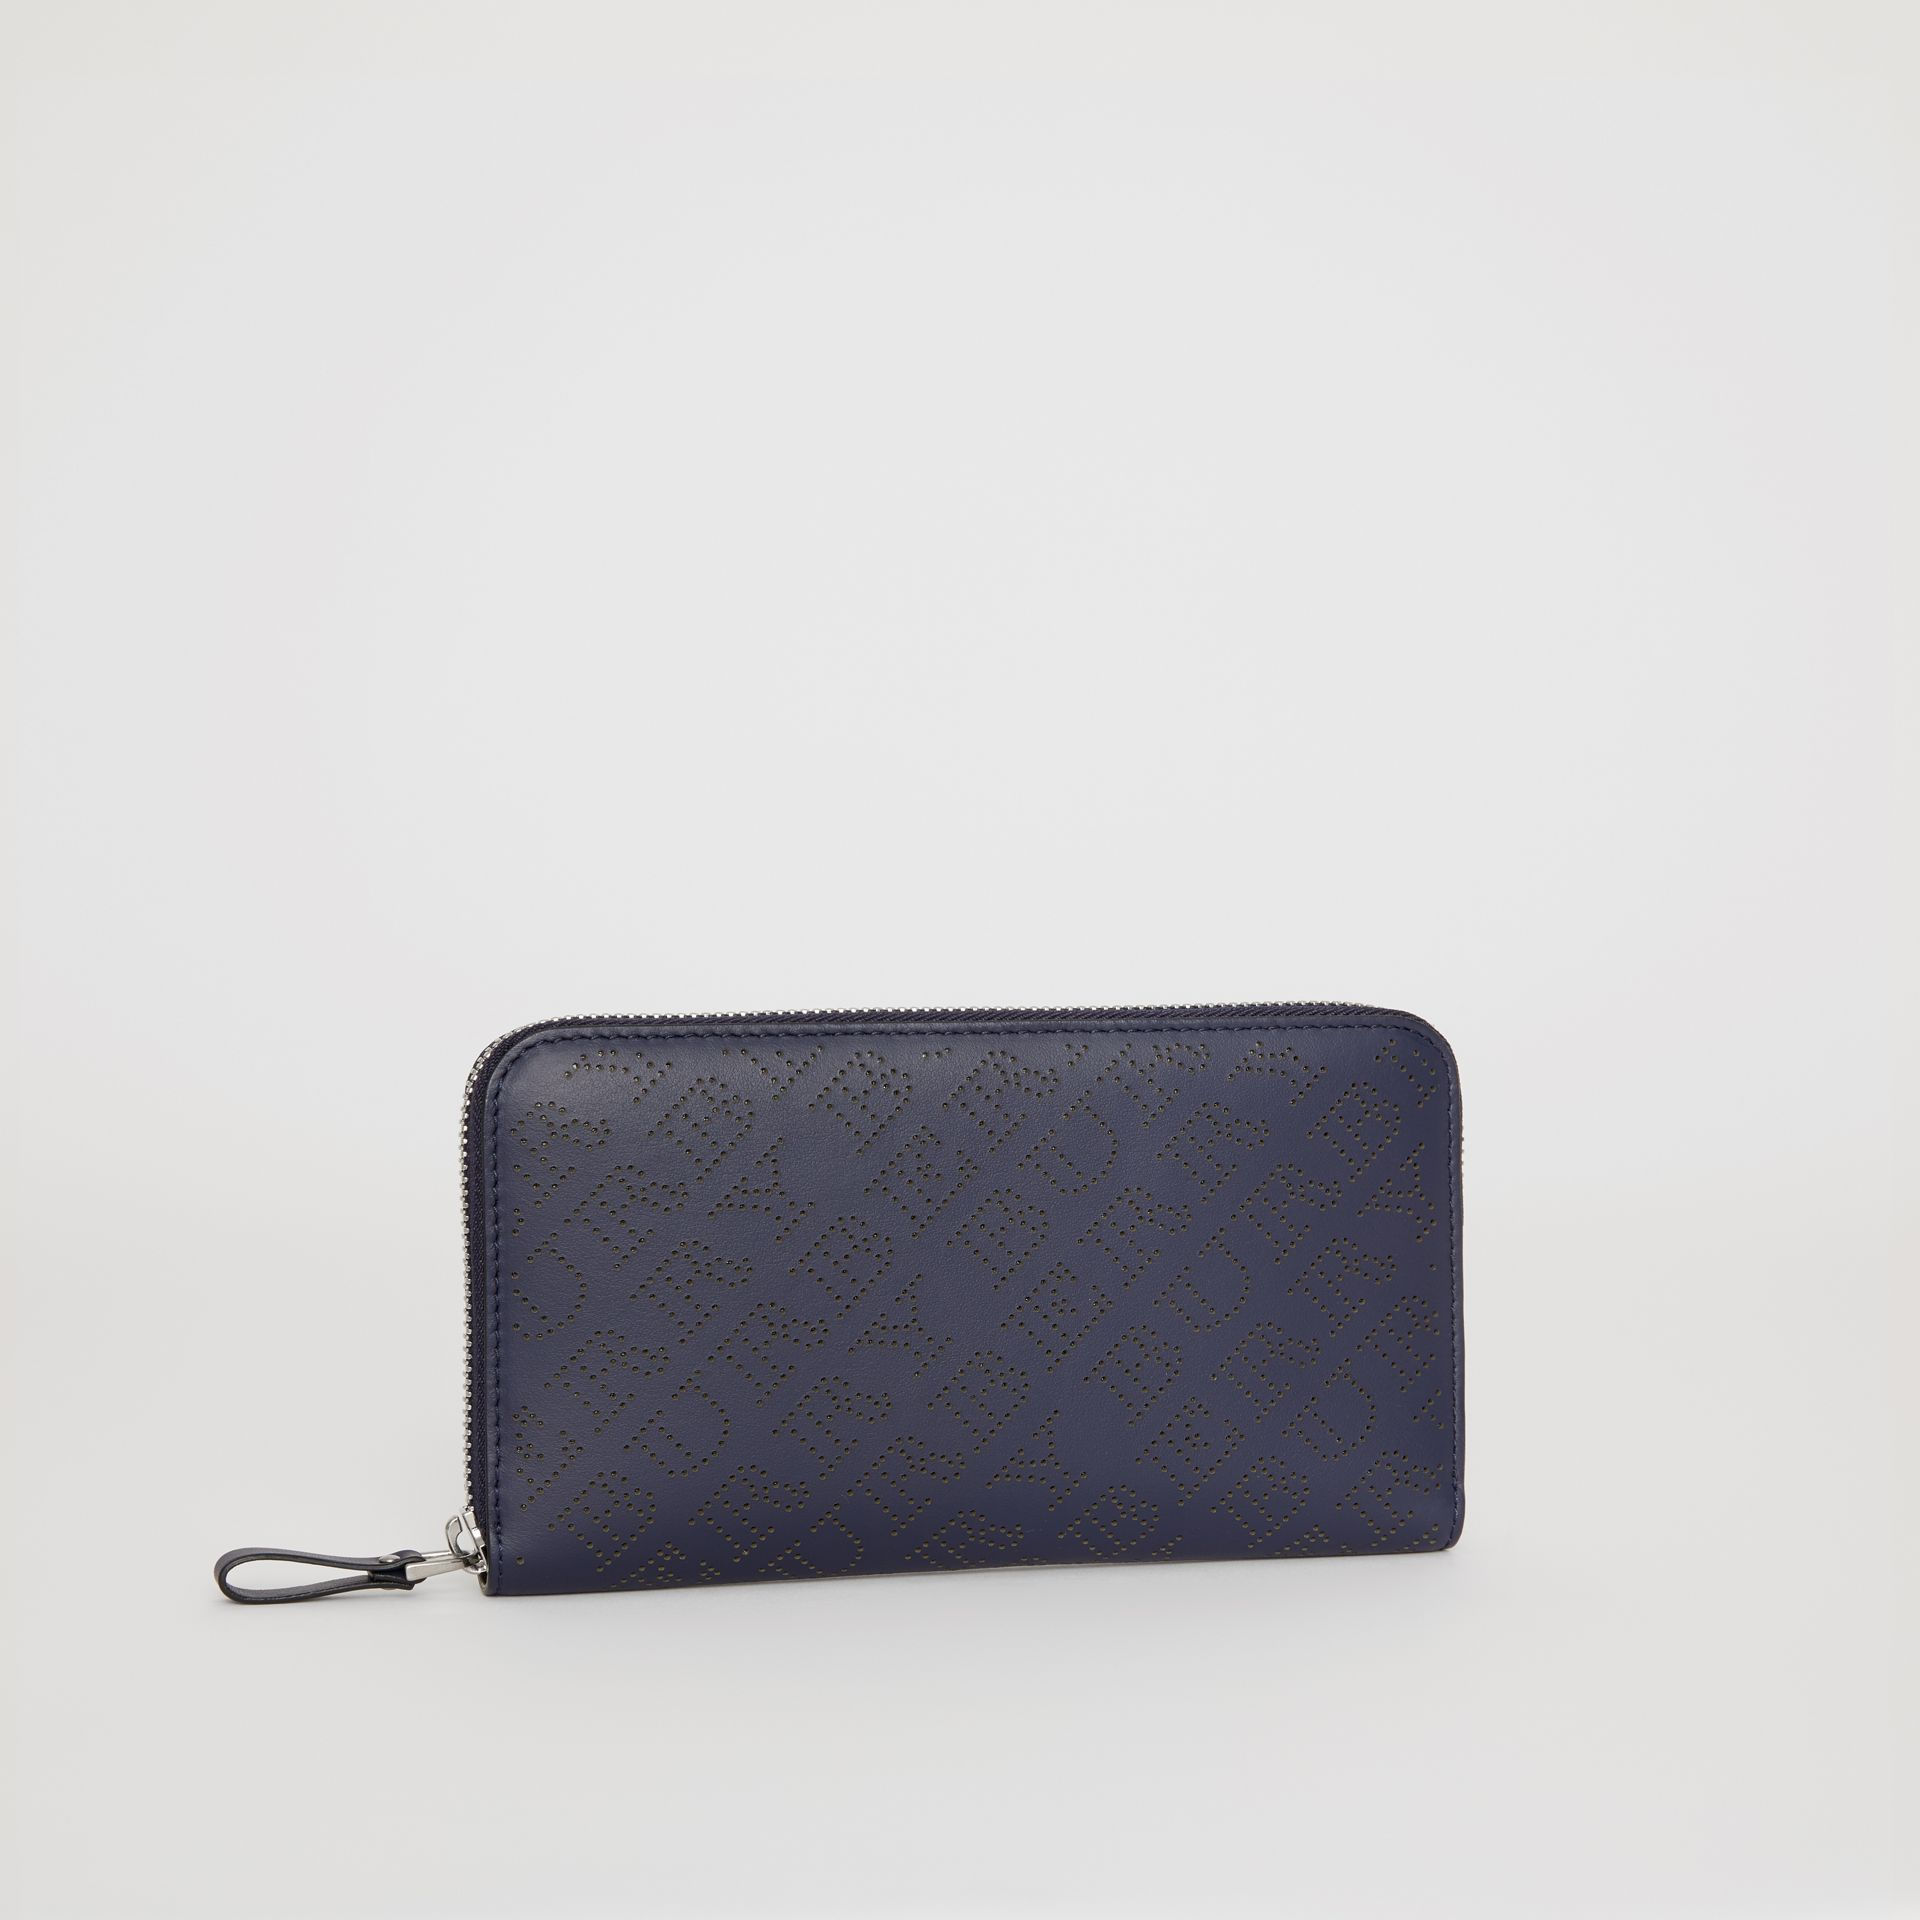 Perforated Leather Ziparound Wallet in Navy - Women | Burberry Australia - gallery image 4